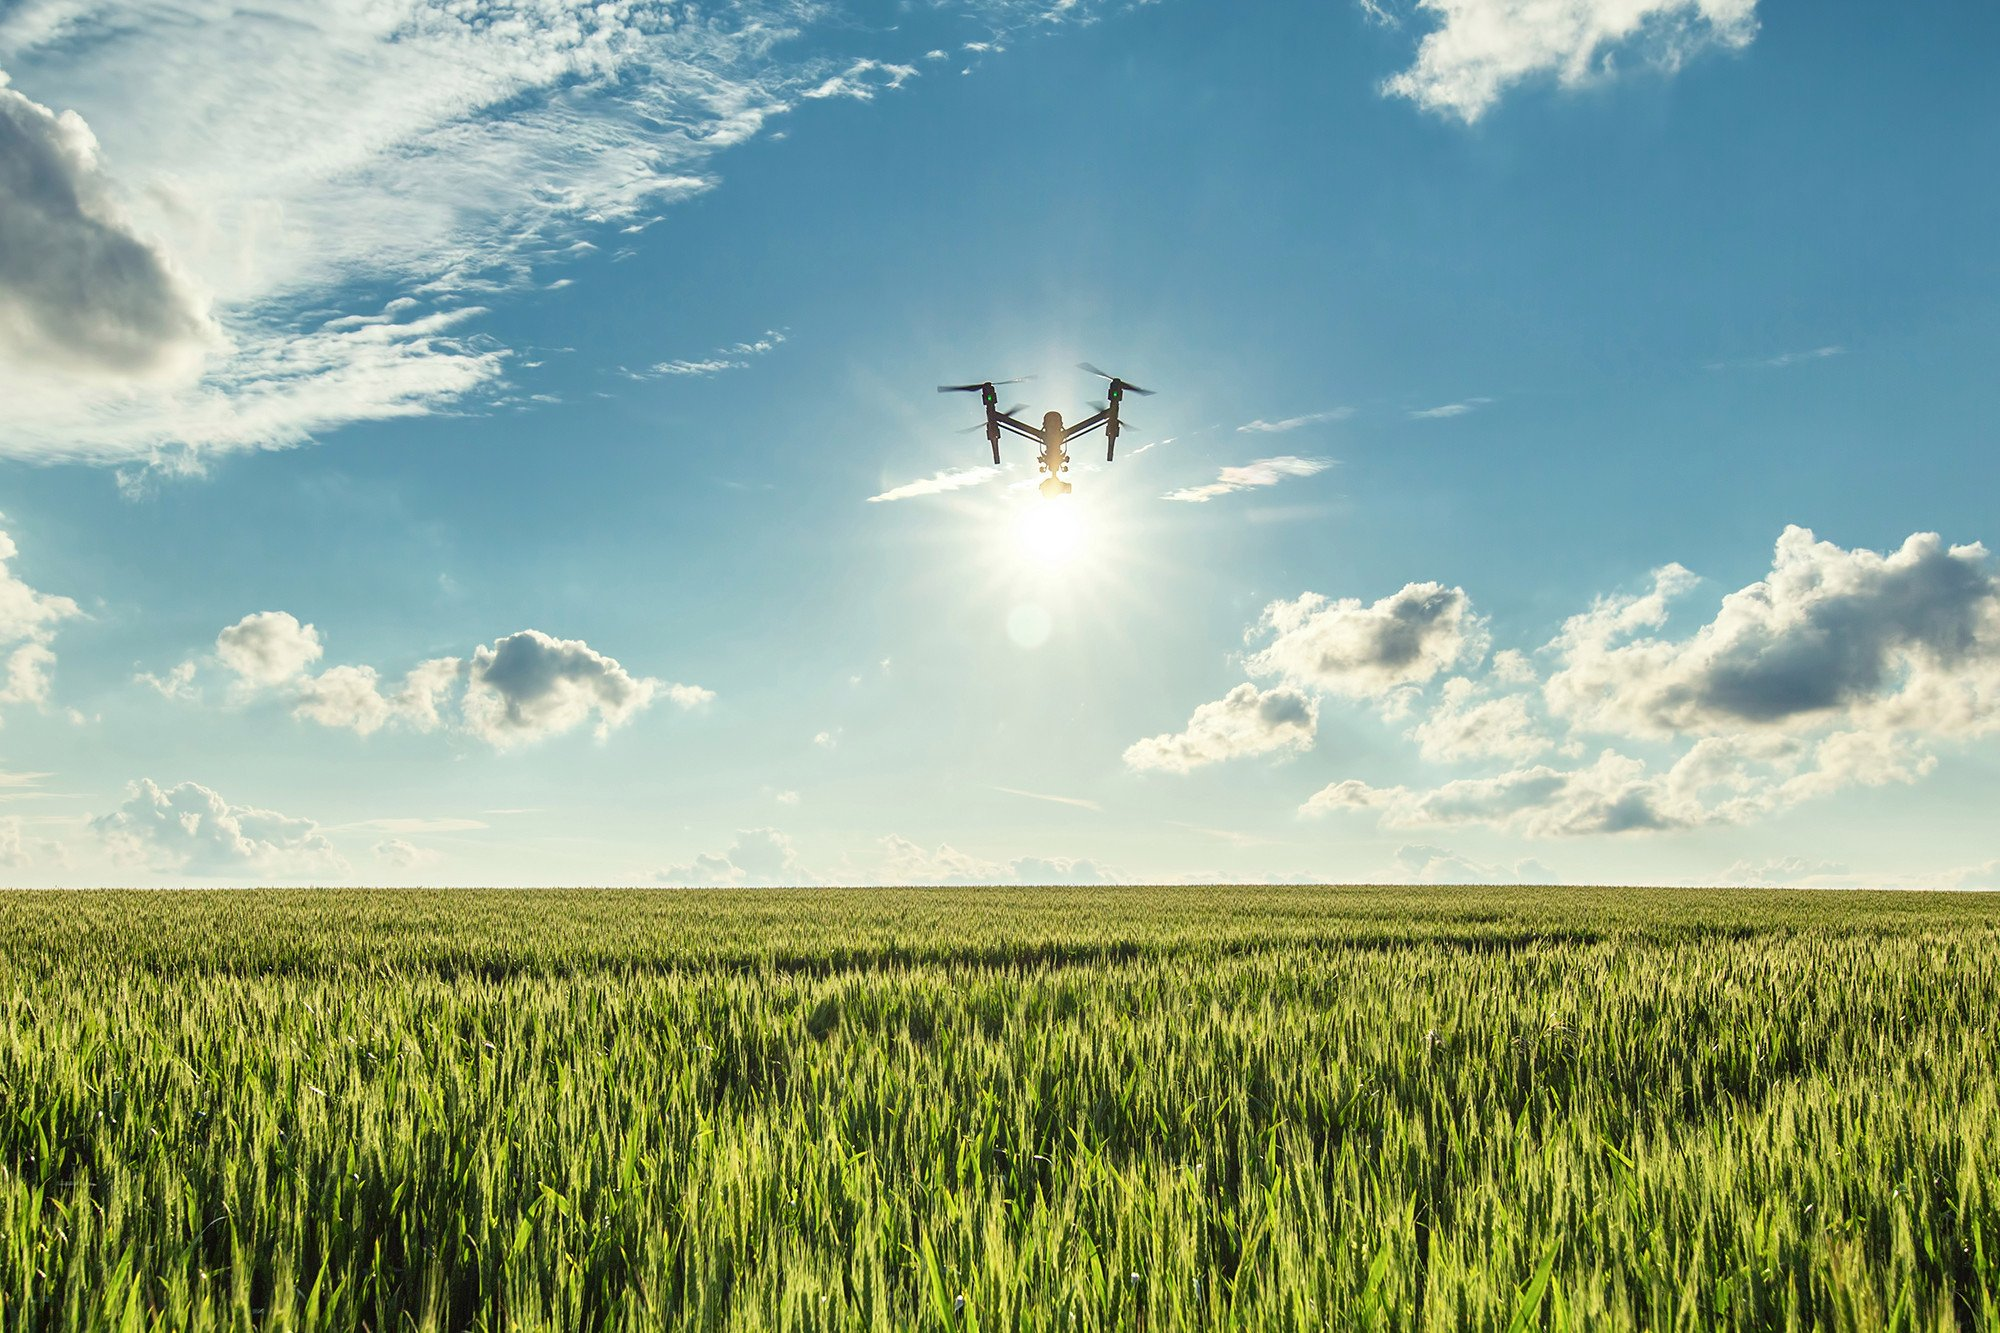 The future of human life could be saved by tree-planting drones